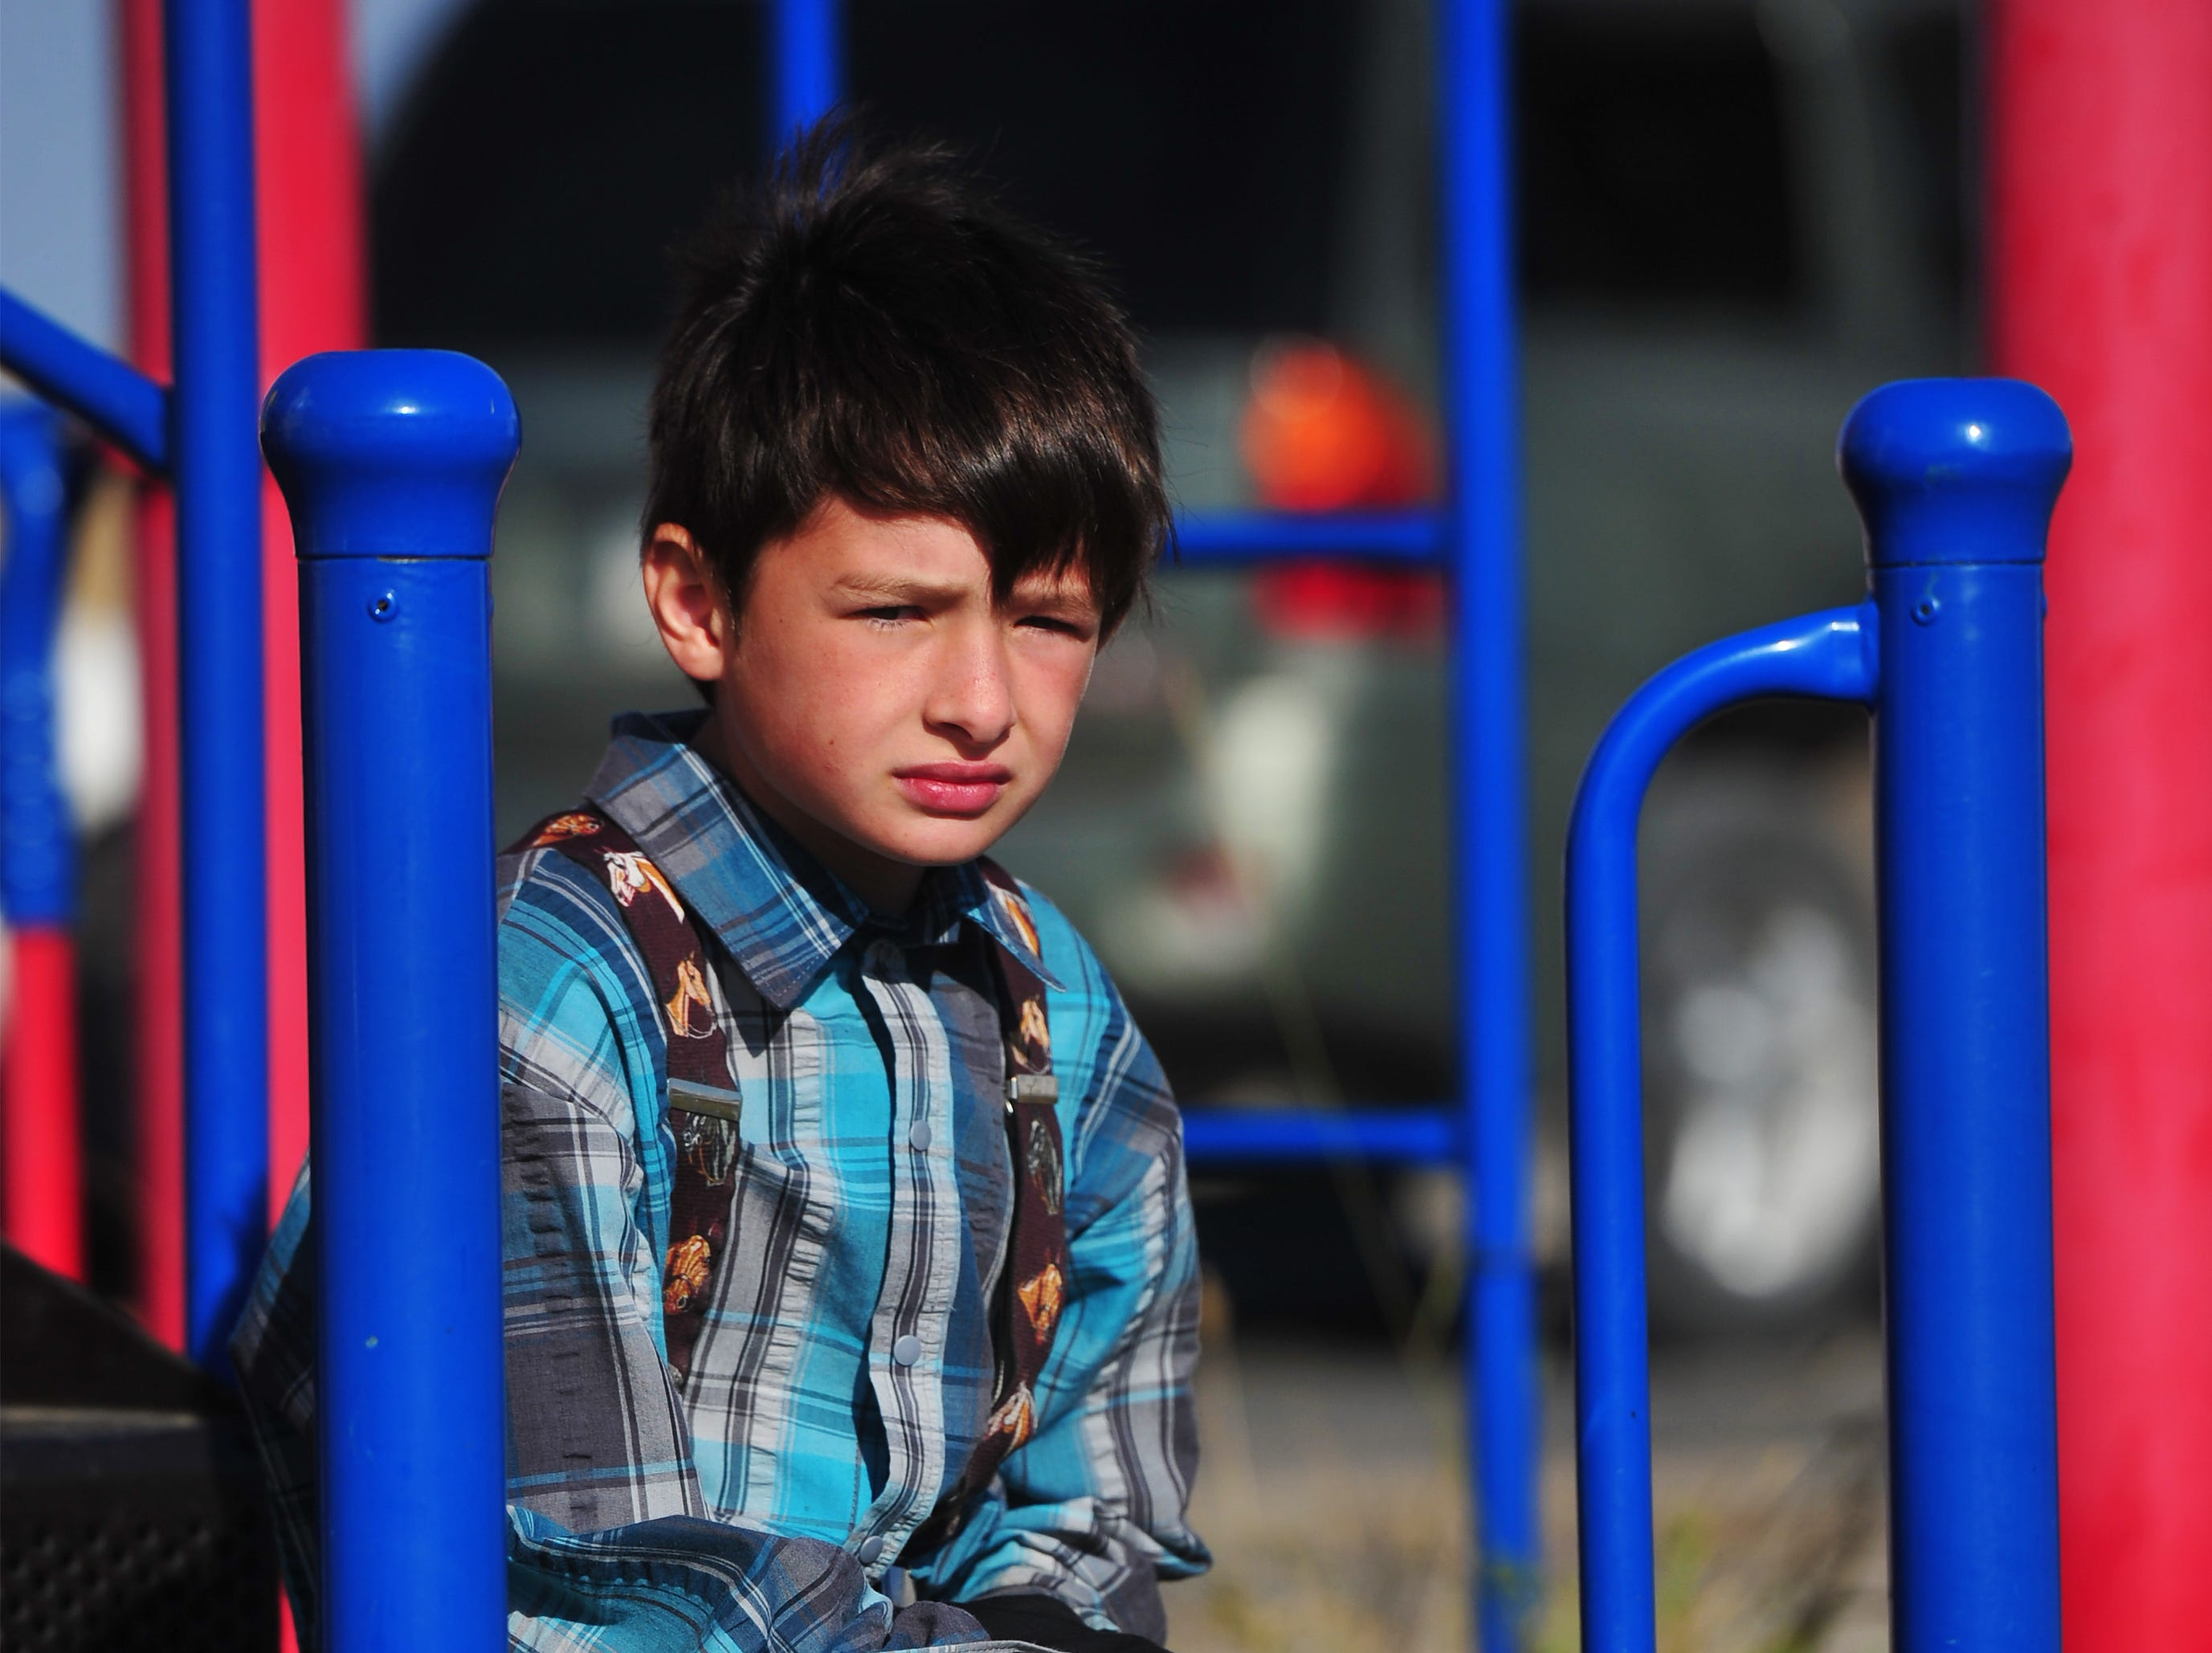 10:00 am: Timothy Stahl, a second grader in Traci Manseau's class rests on a play structure during recess, Monday, Sept. 17, 2018.  Traci Manseau is a teaching veteran of 23 years and she has spent her entire career teaching in one room rural school houses.  She is currently teaching 15 students across seven different grade levels at the Deerfield Hutterite Colony in North Central Montana's Fergus County.